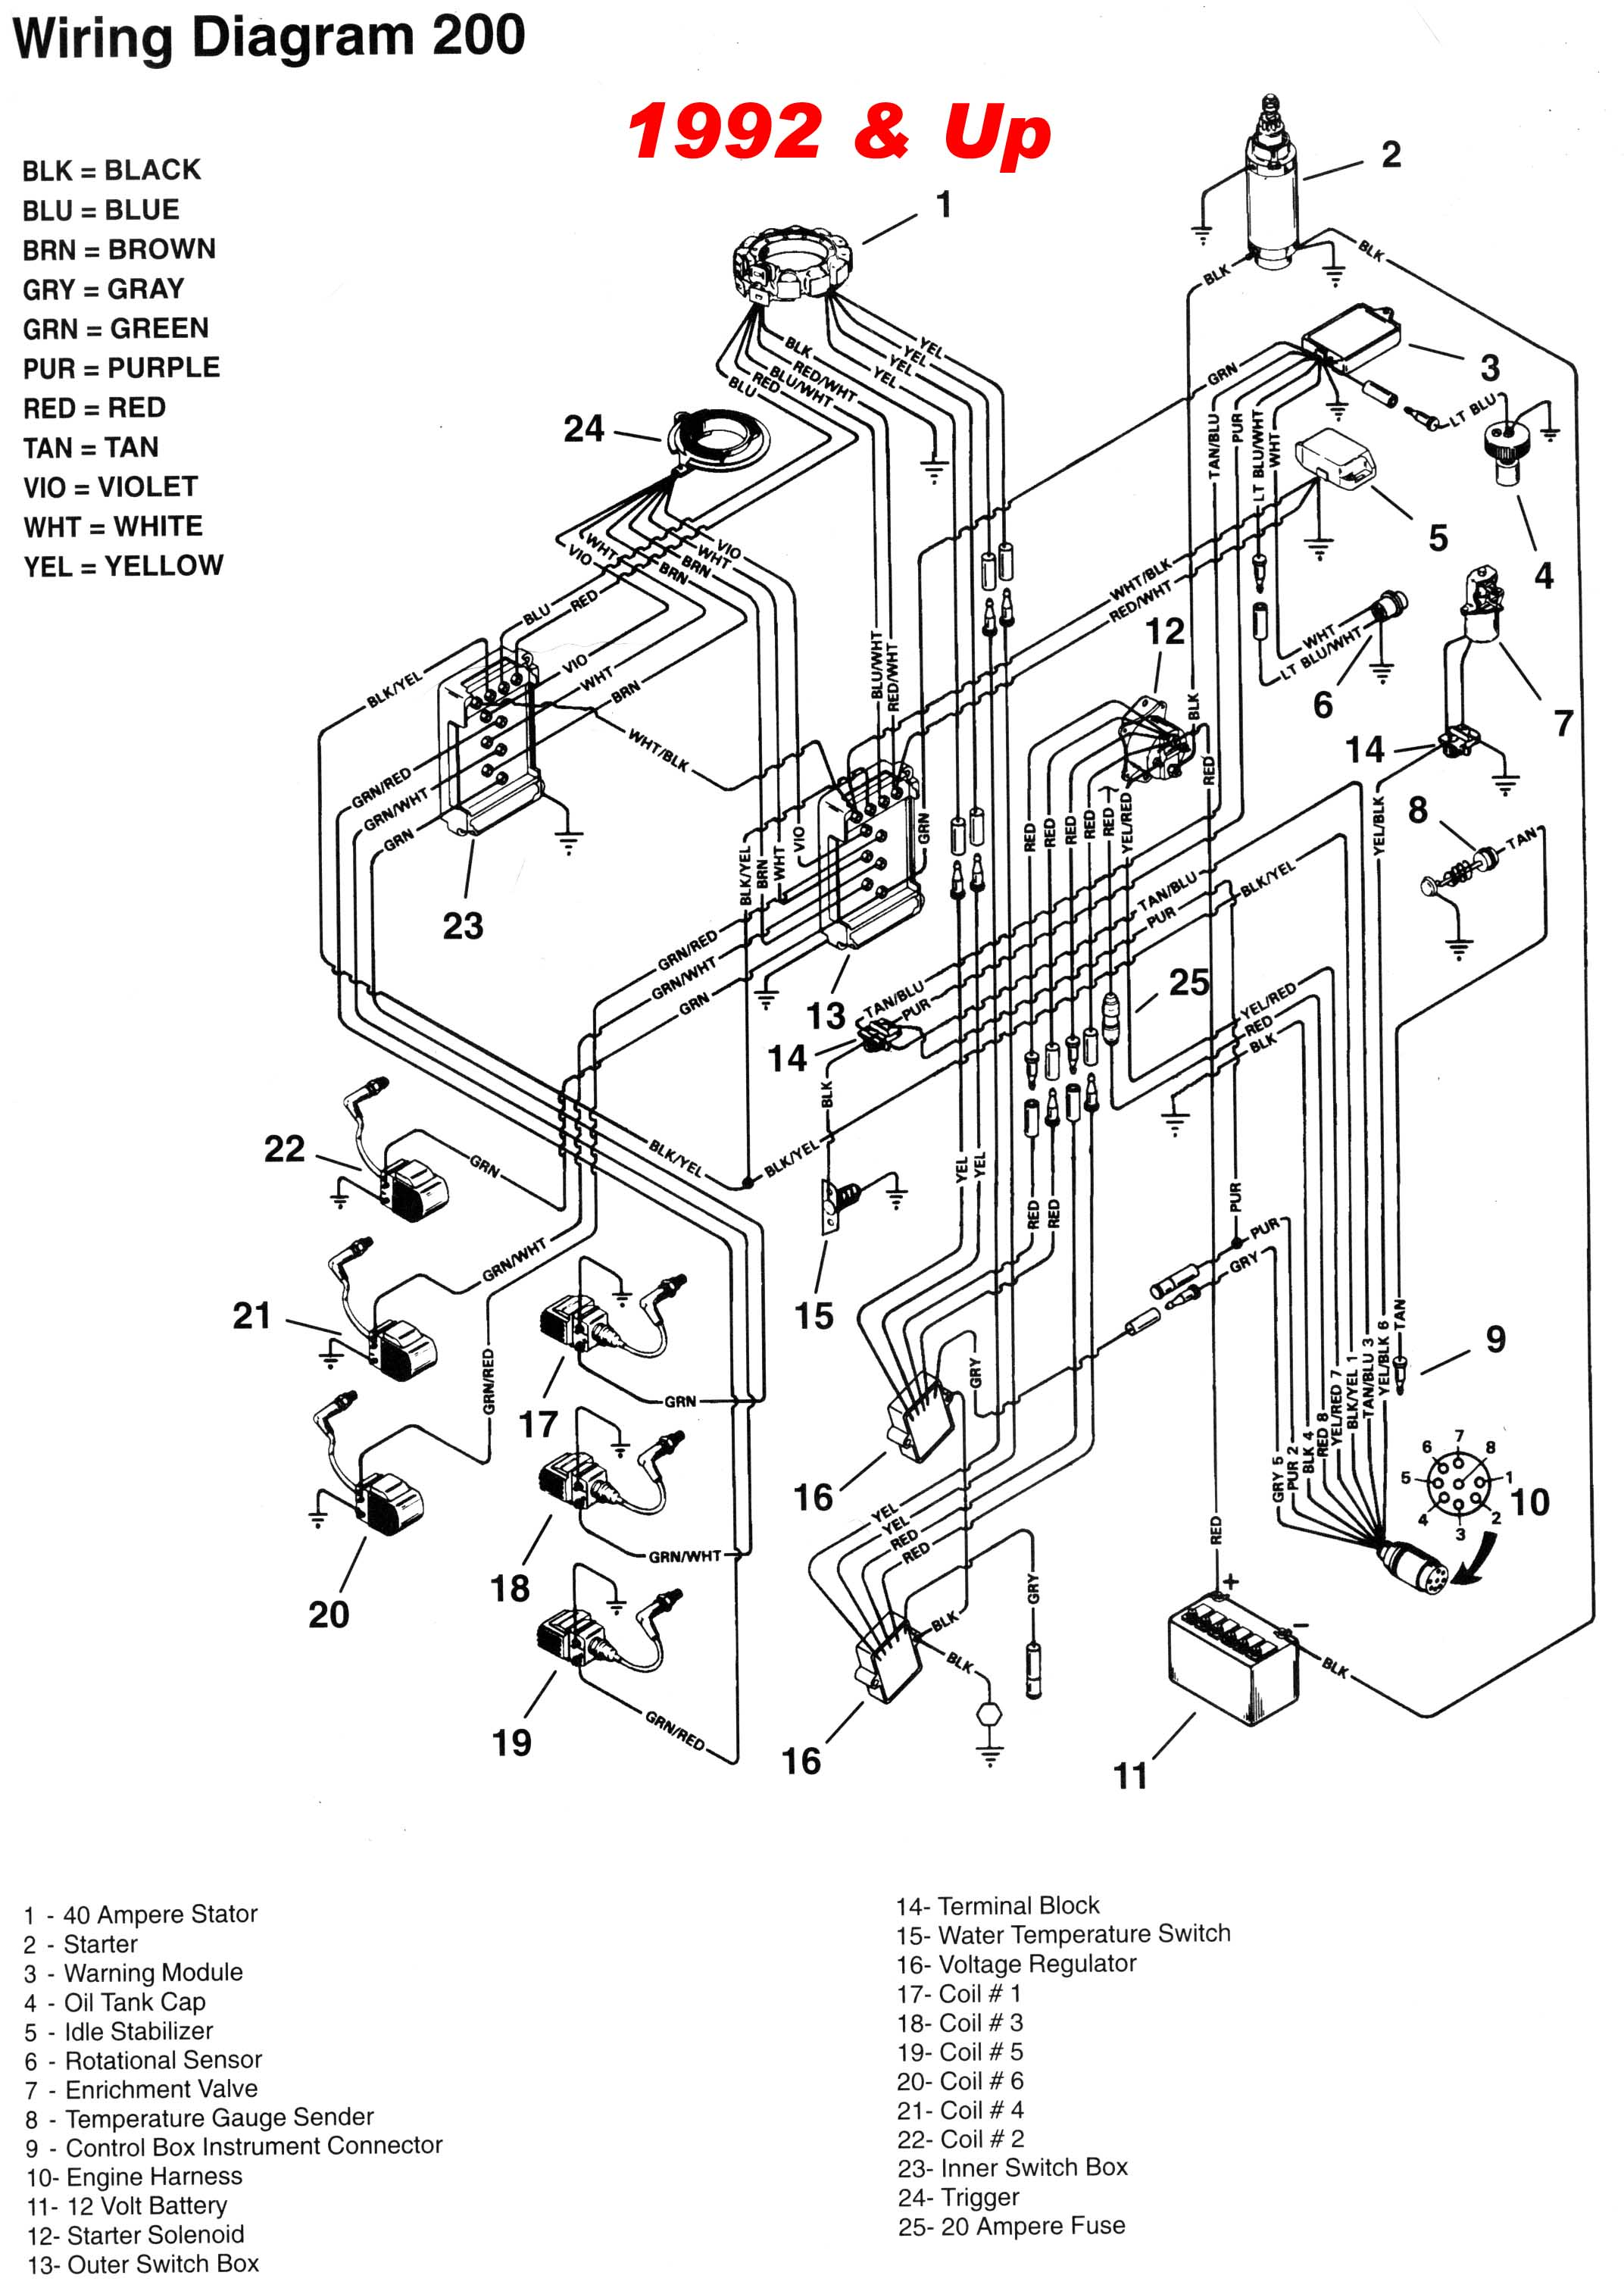 1997 Mercury Outboard Wiring Diagram Guide And Troubleshooting Of For 1995 Grand Marquis Diagrams Detailed Rh 7 6 Ocotillo Paysage Com 90 Hp V6